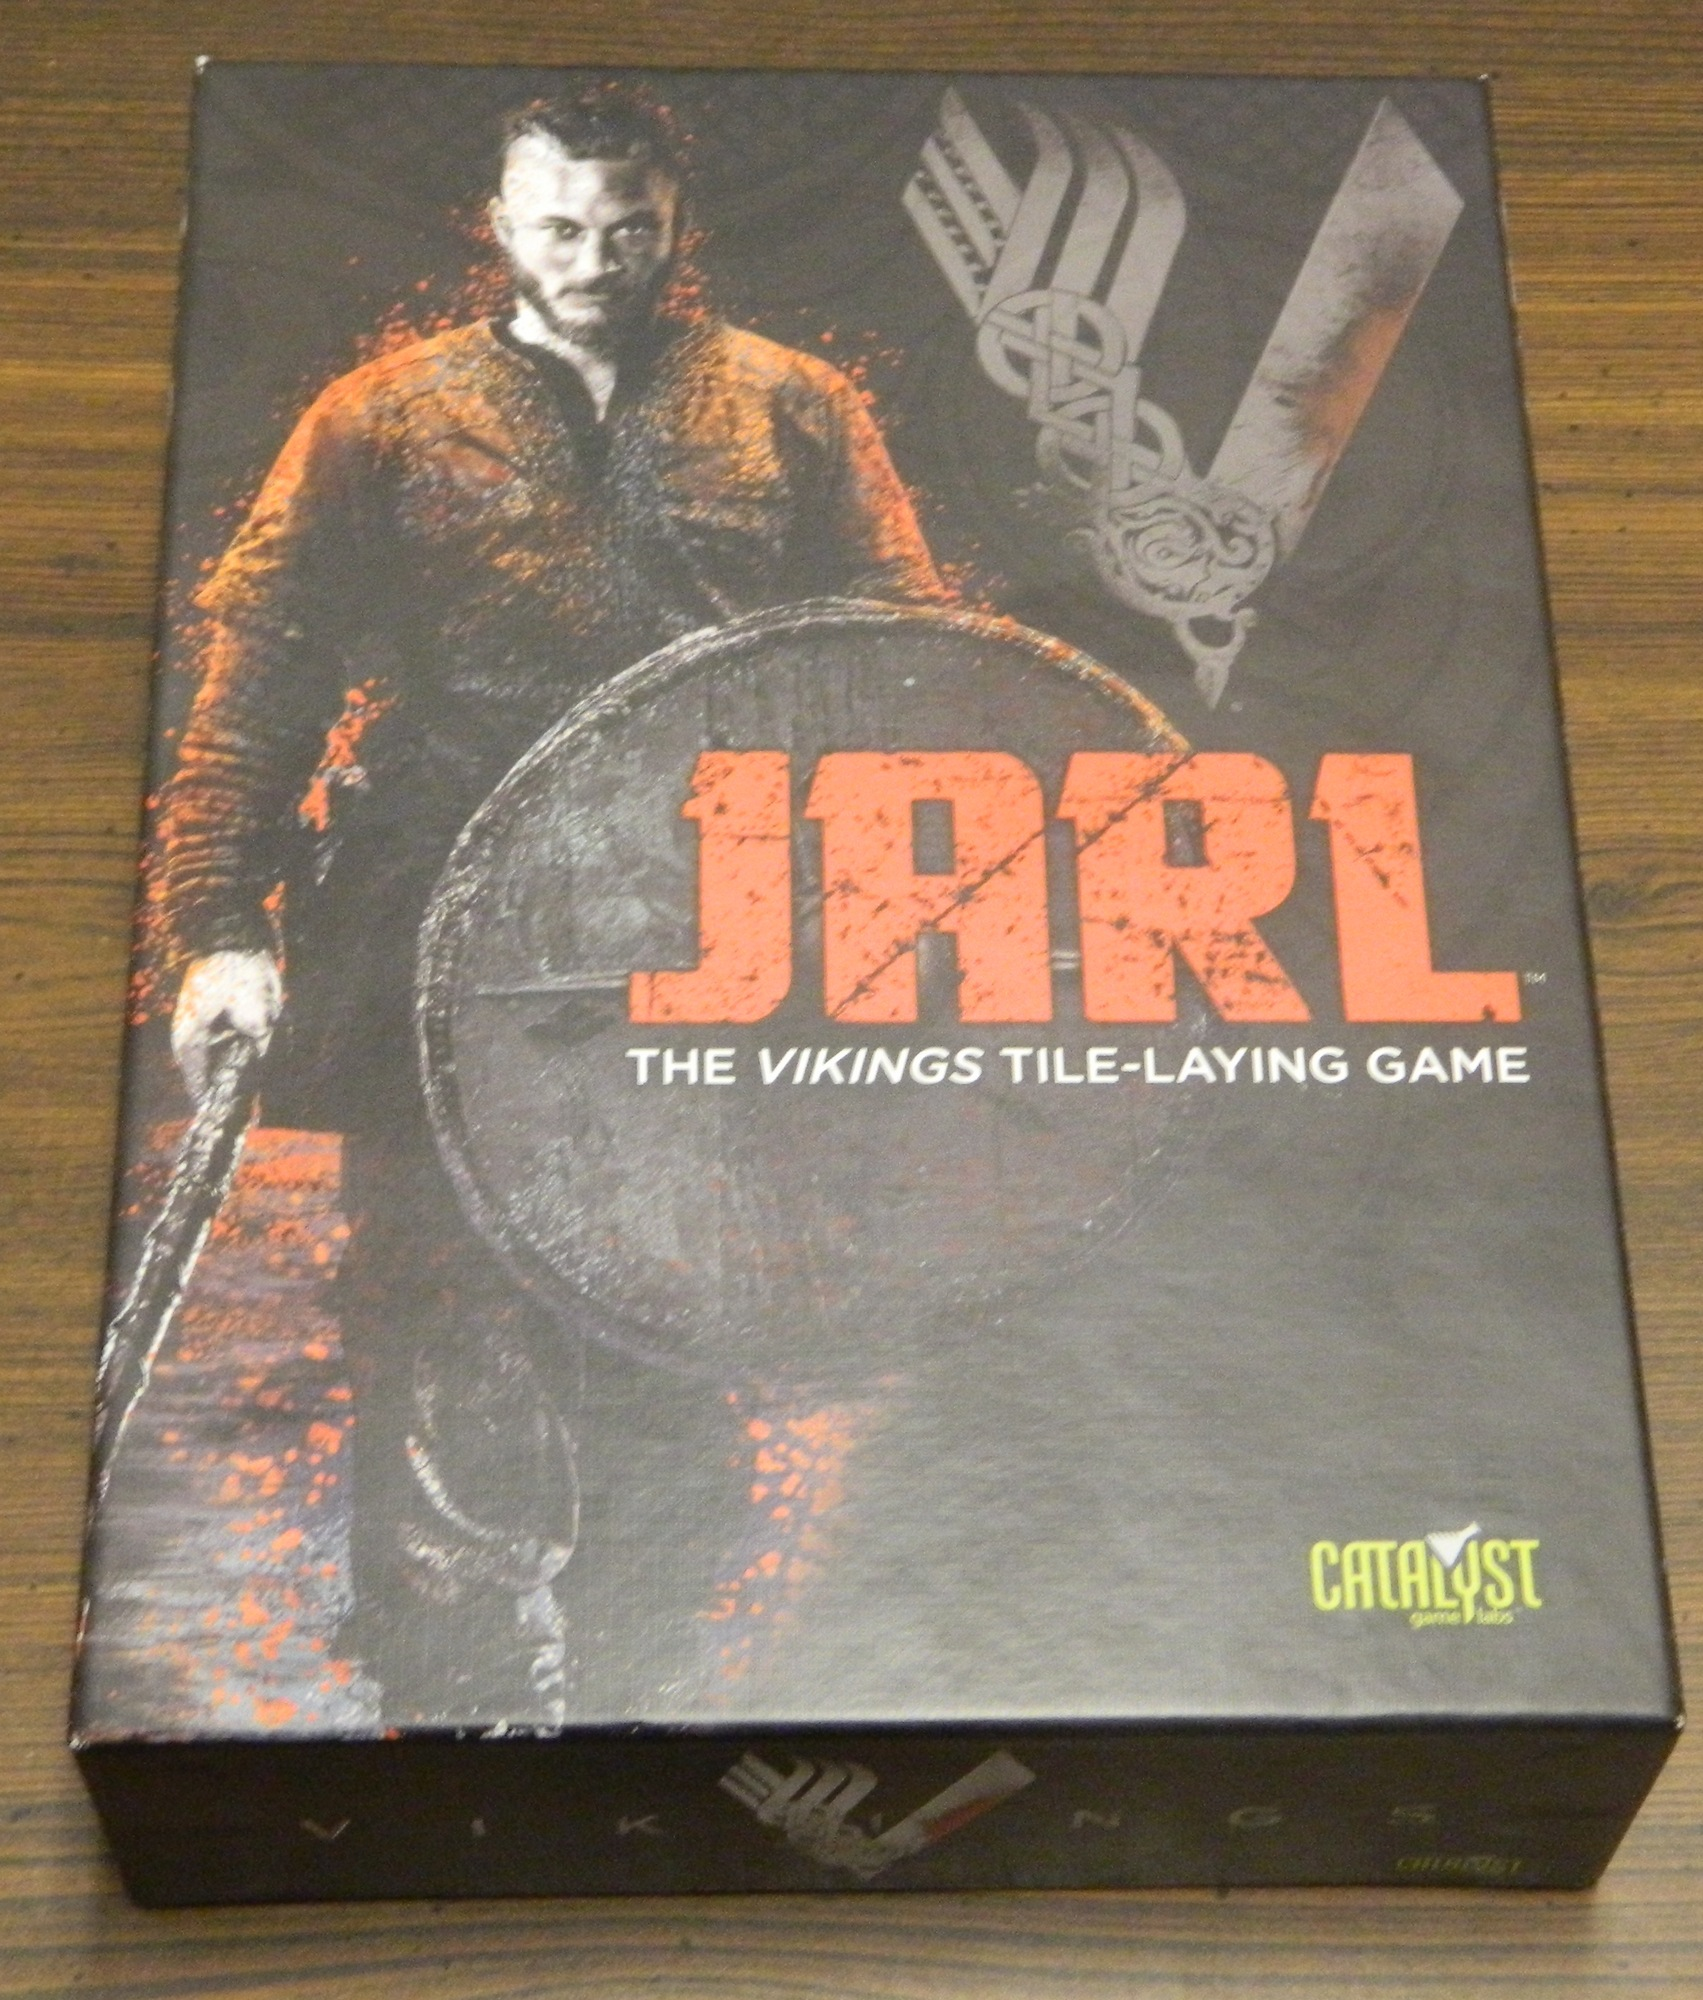 Box for Jarl